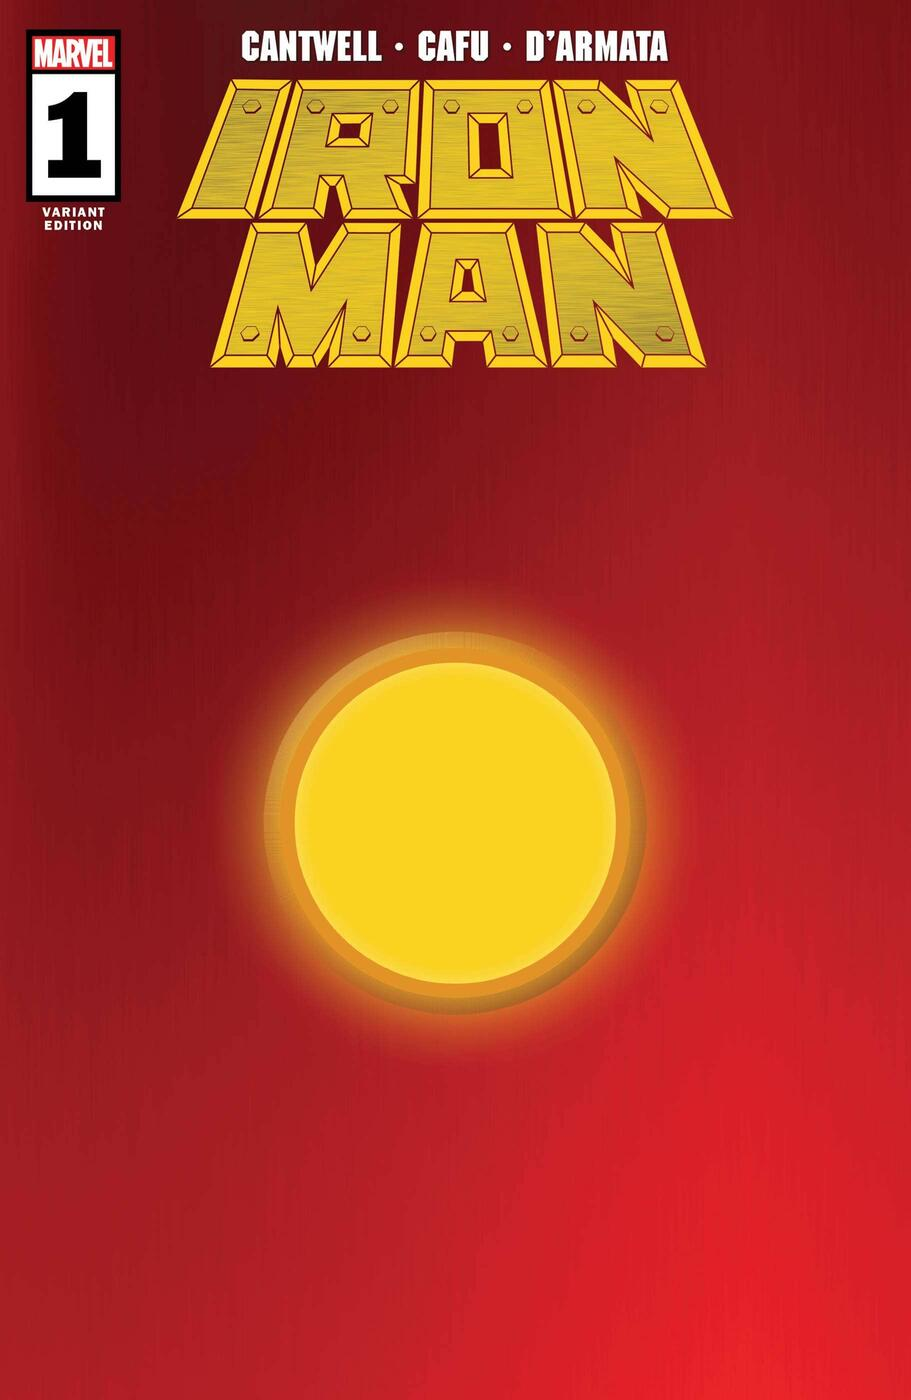 IRON MAN #1 variant cover